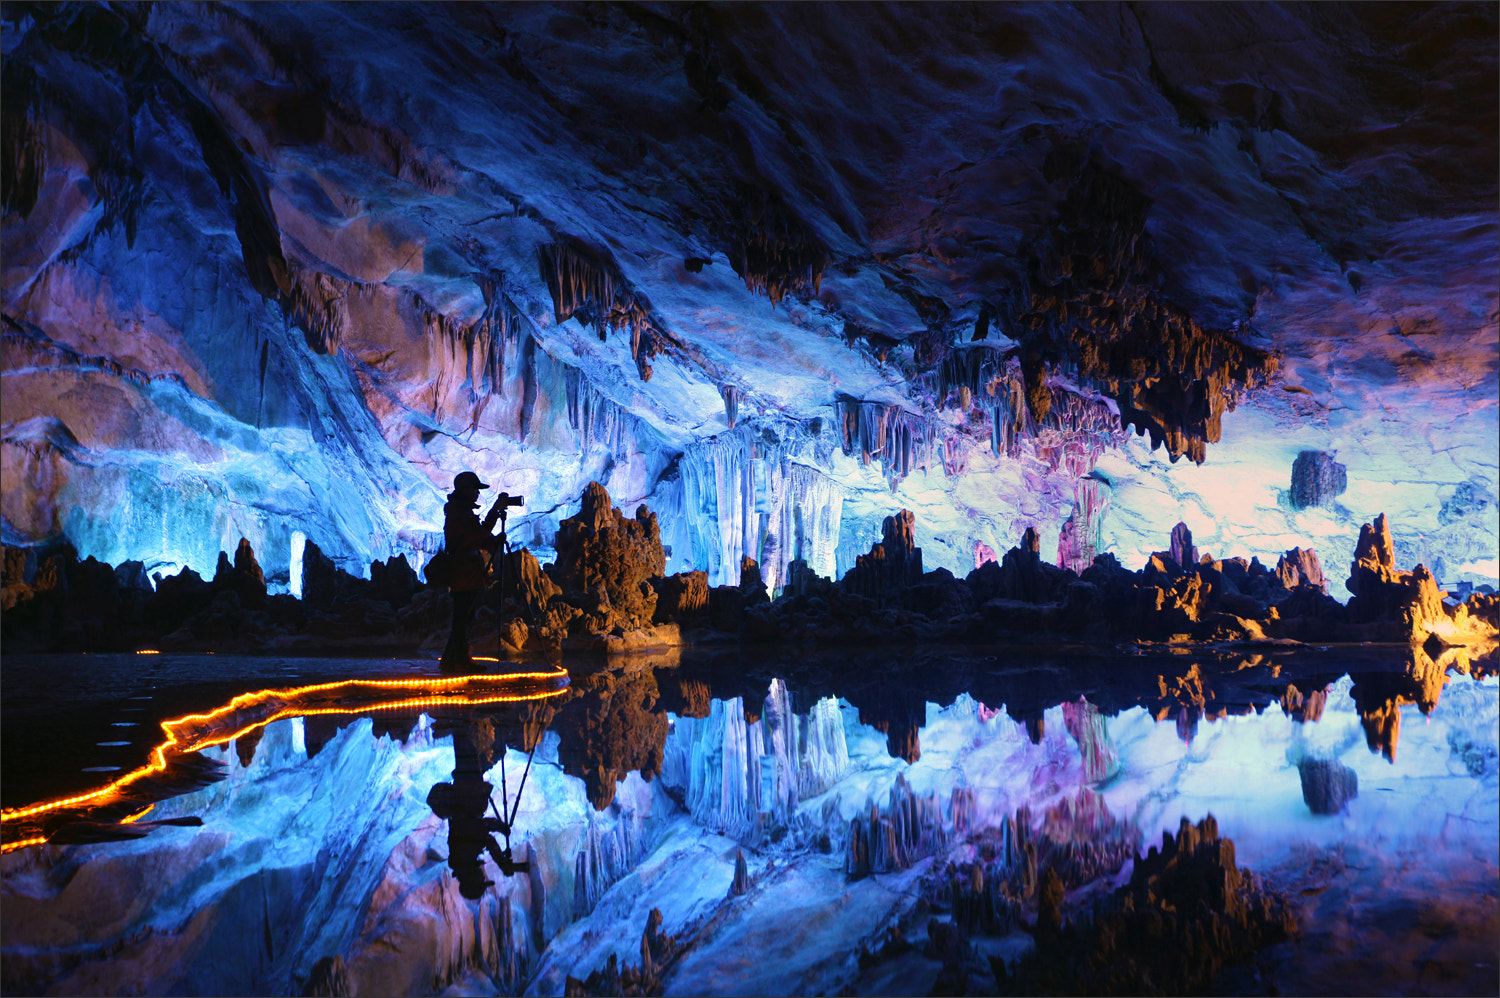 Photograph Photographer in the Cave by Woosra Kim on 500px